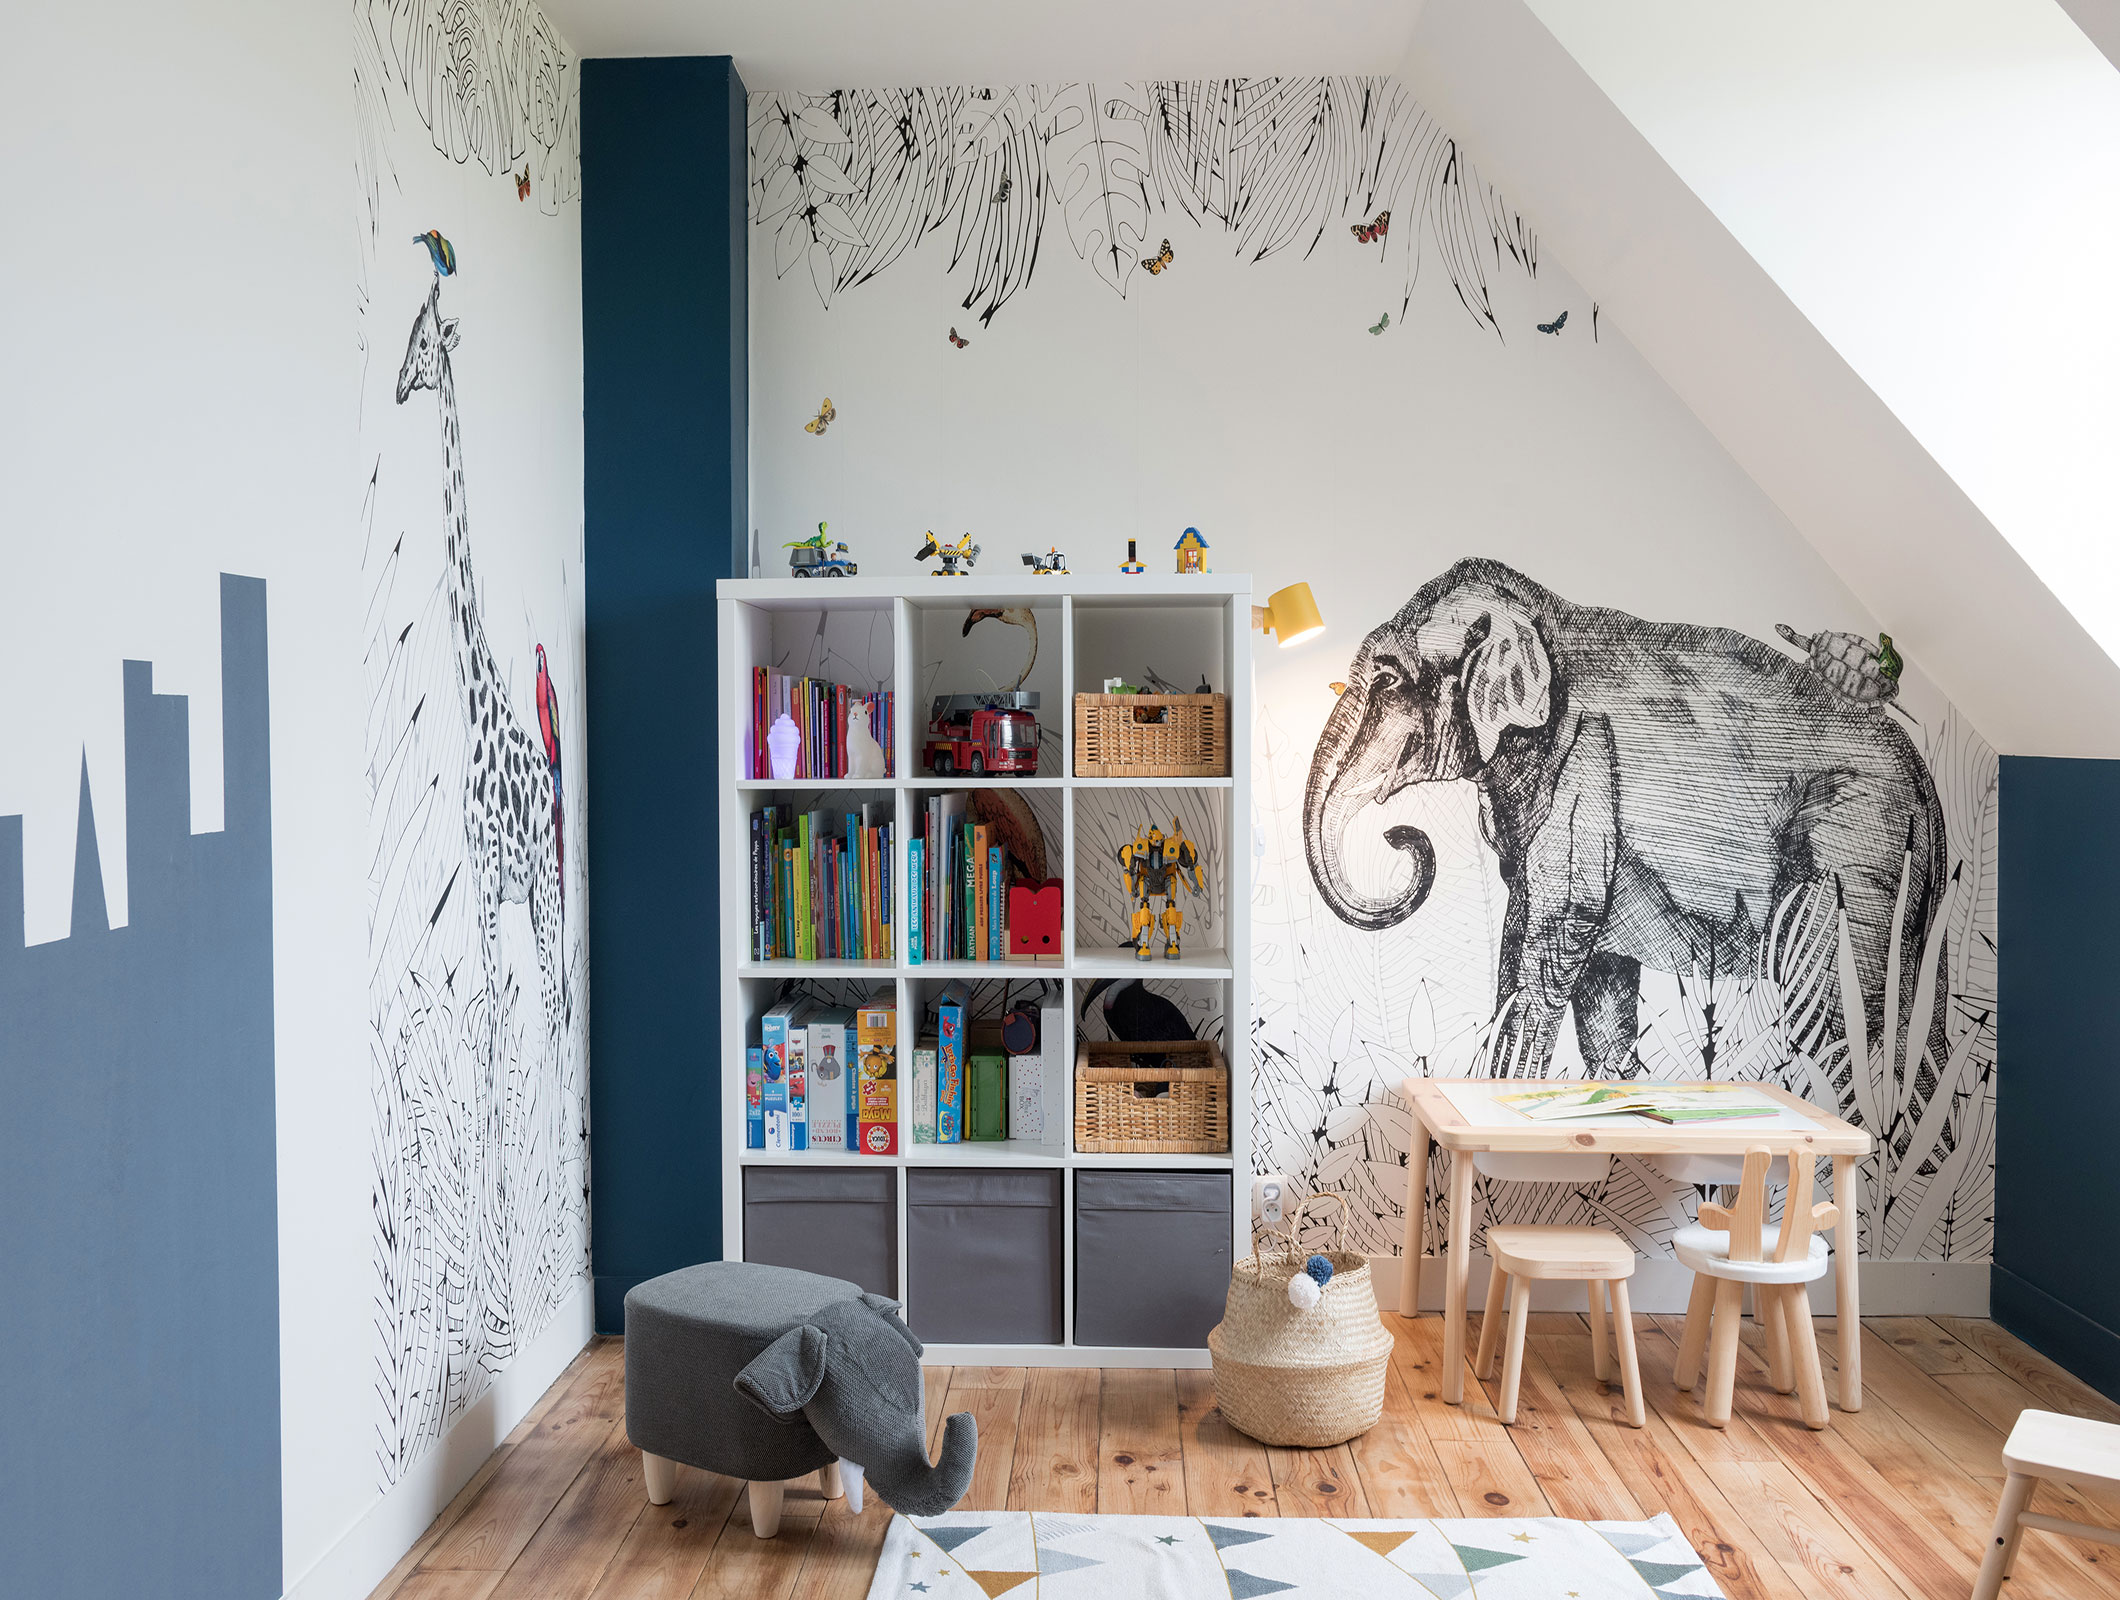 meuble-sur-mesure-bois-metal-bibliotheque-bureau-agence-atmospheres-design-joa-architecture-dinterieur-meuble-design-interioir-design-paris-oise-idee-deco-metrozoo-papier-peint-etoffe